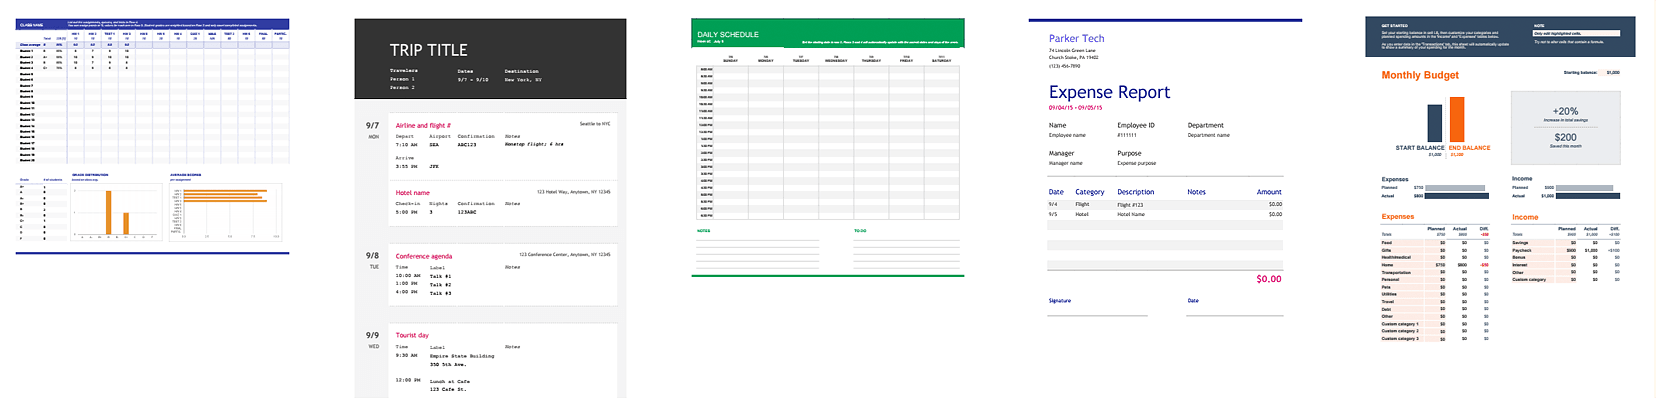 Google Sheets Template